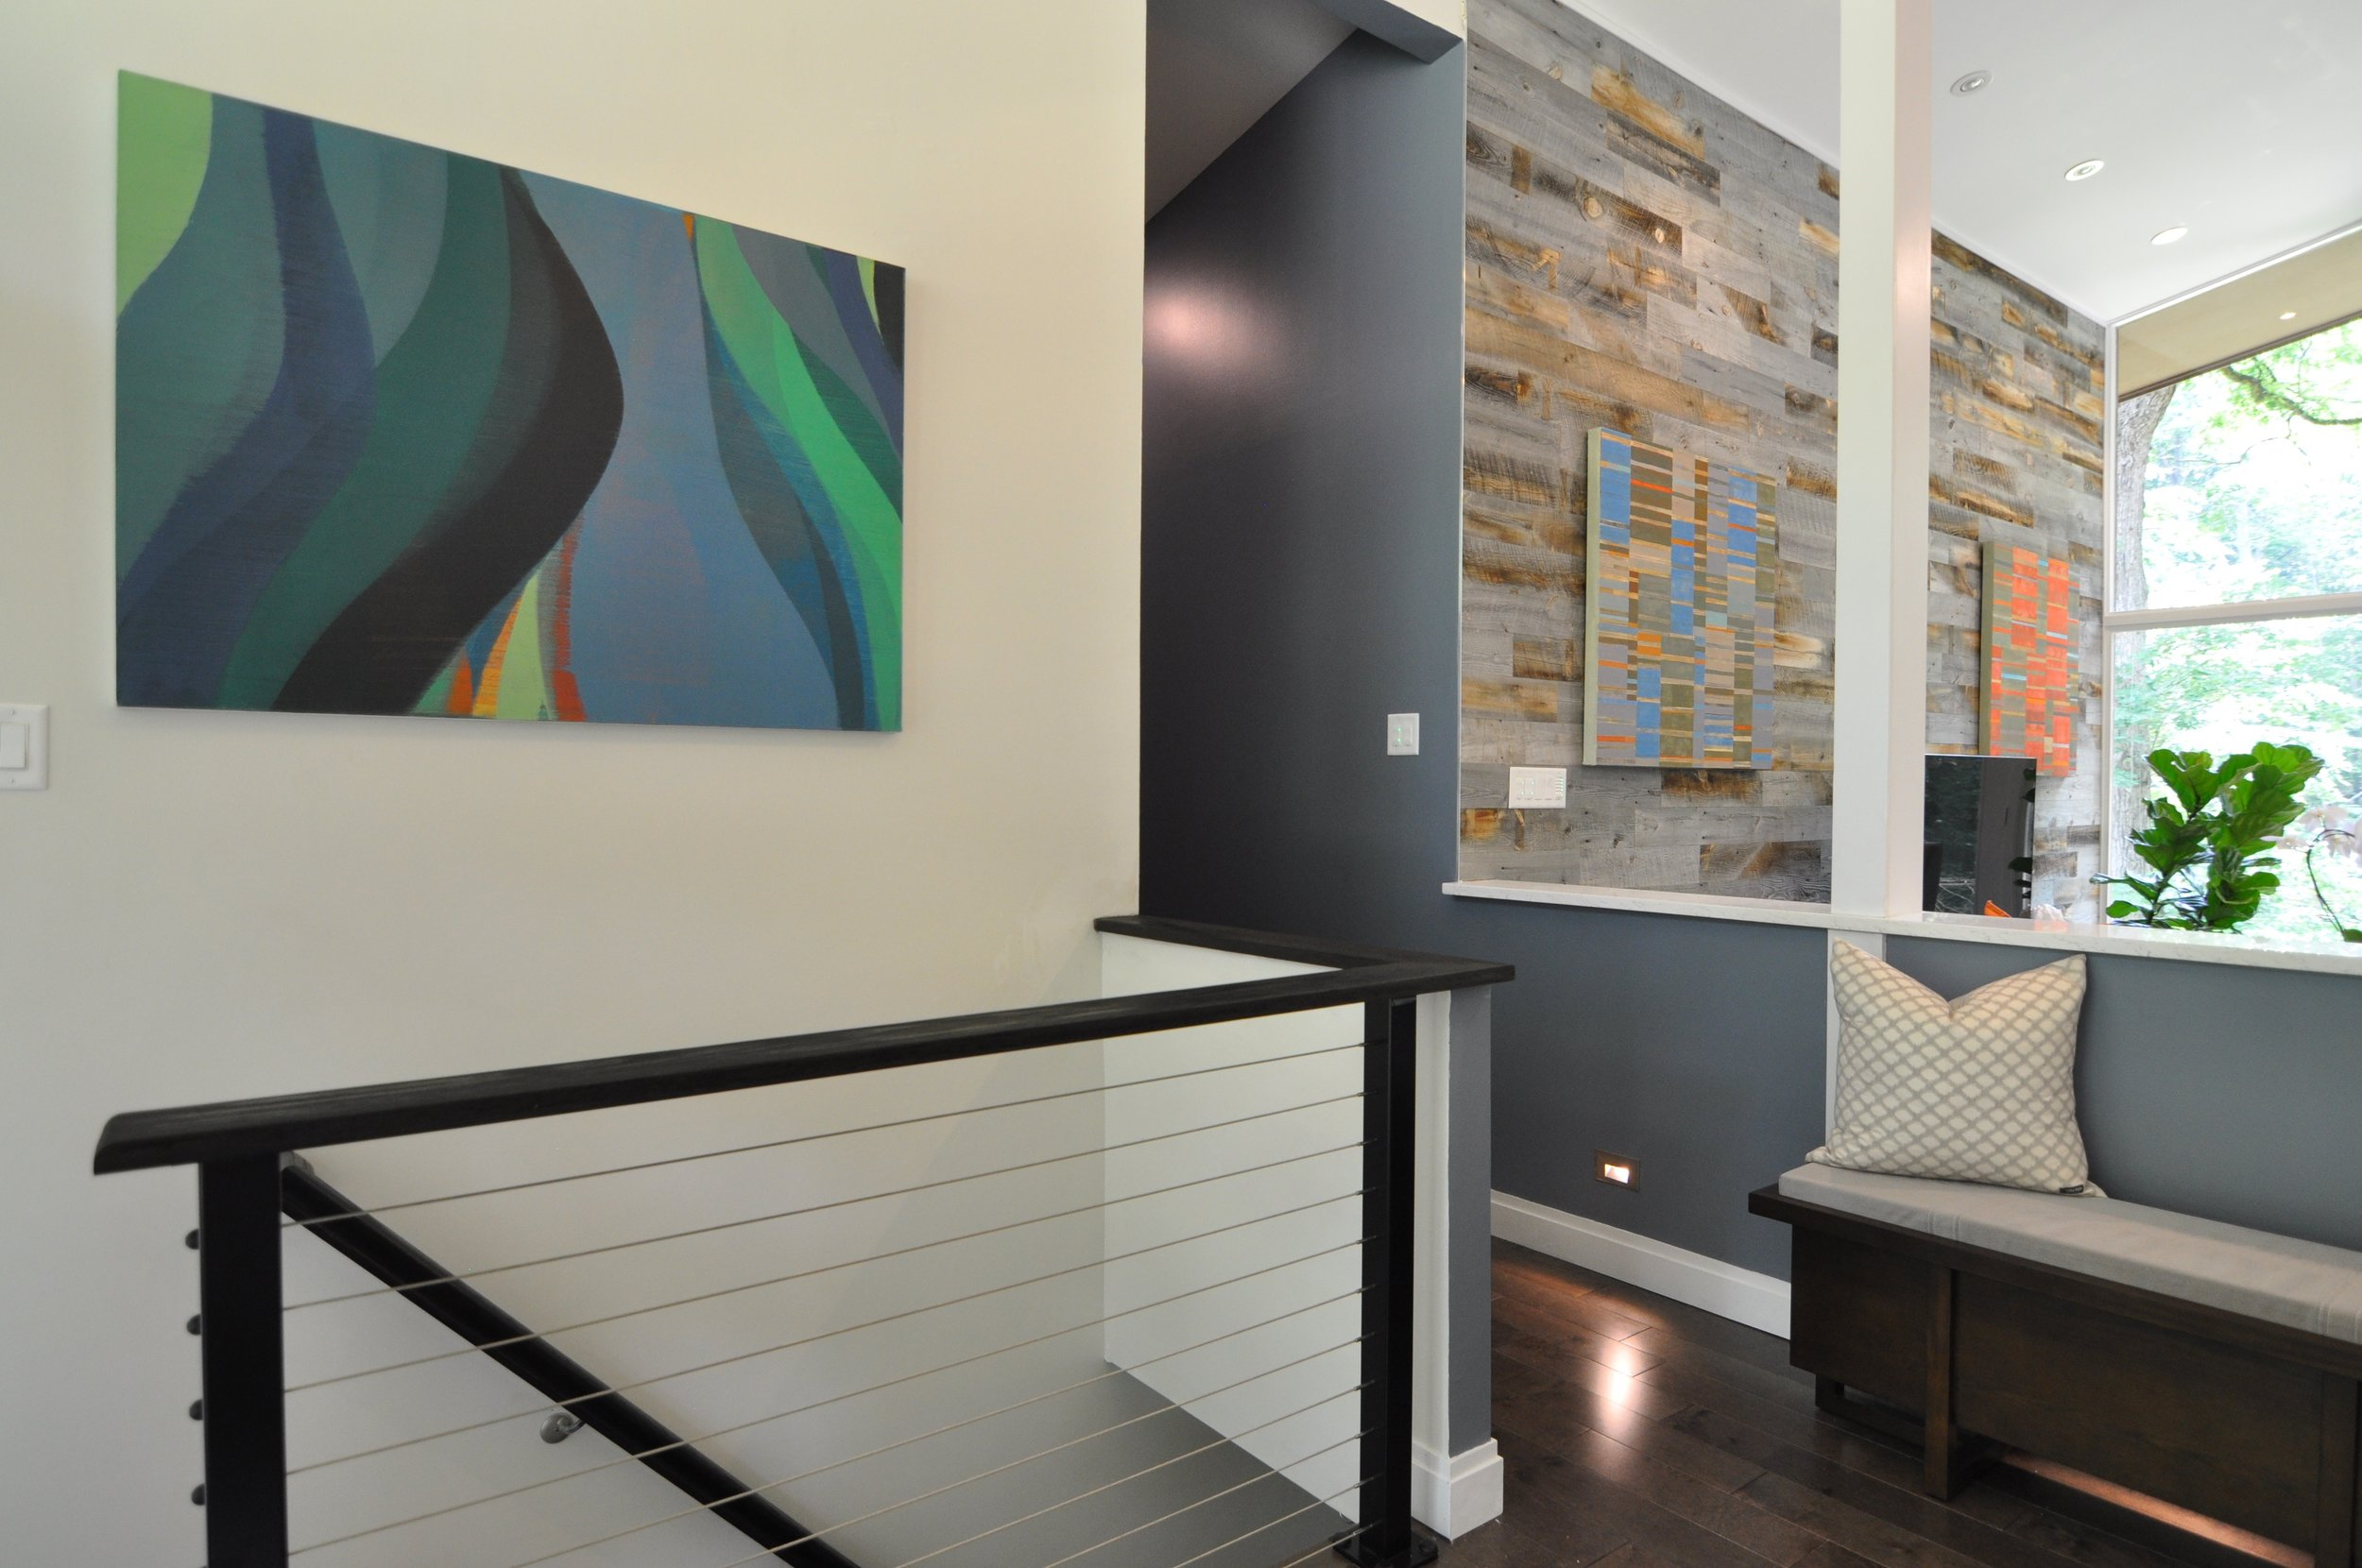 Kim A Mitchell_Design Lead_HGTV_The Property Brothers_Entry_Modern Abstract Art_Stikwood_2017.jpg